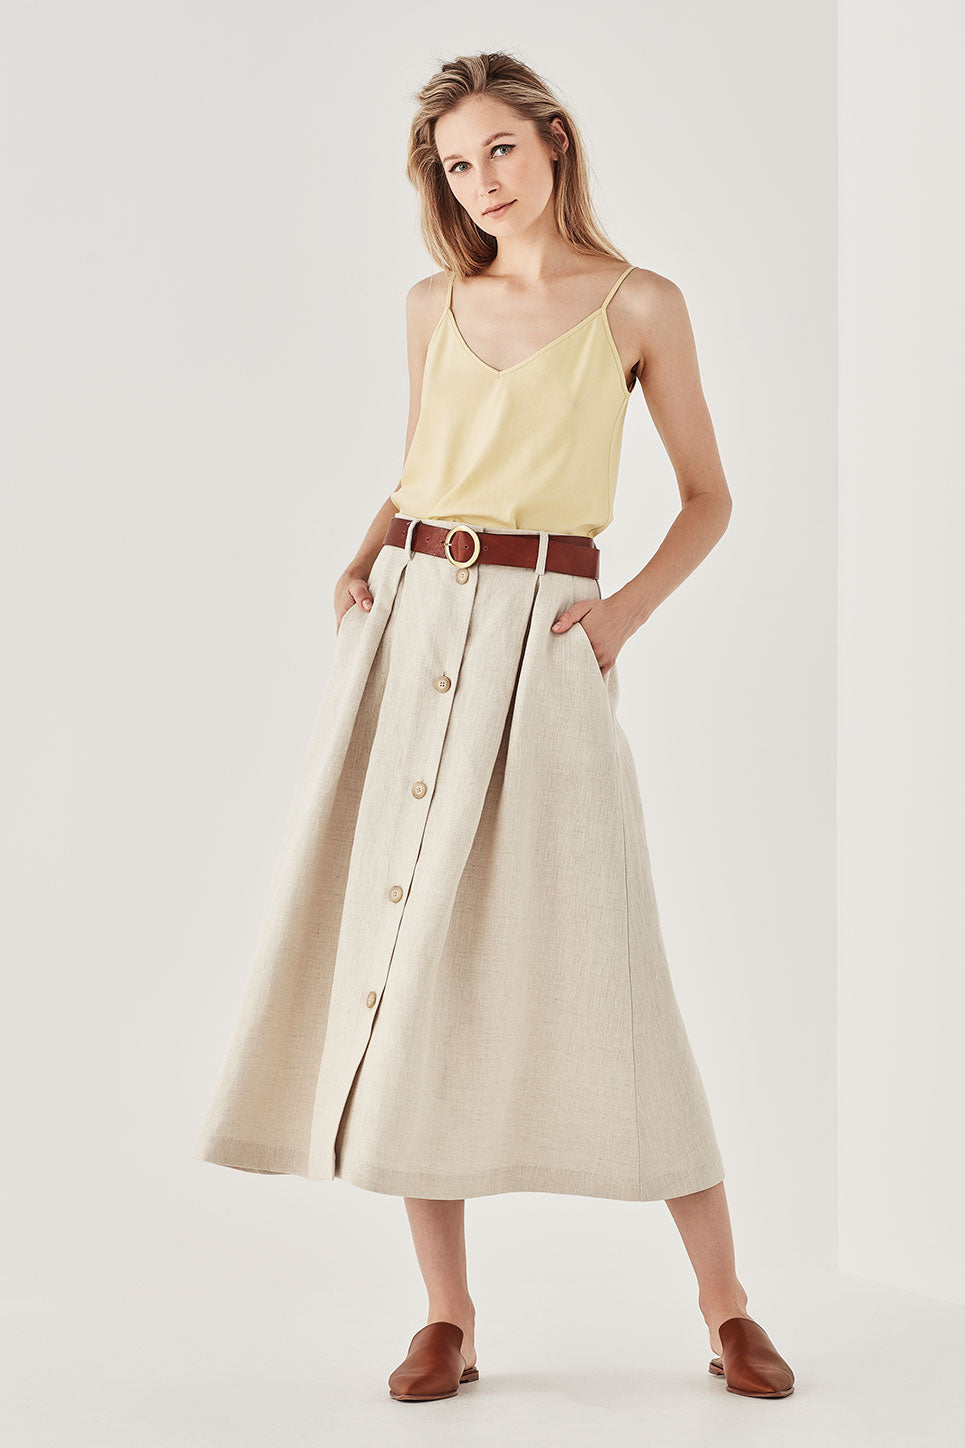 The Rafferty Skirt in Oat